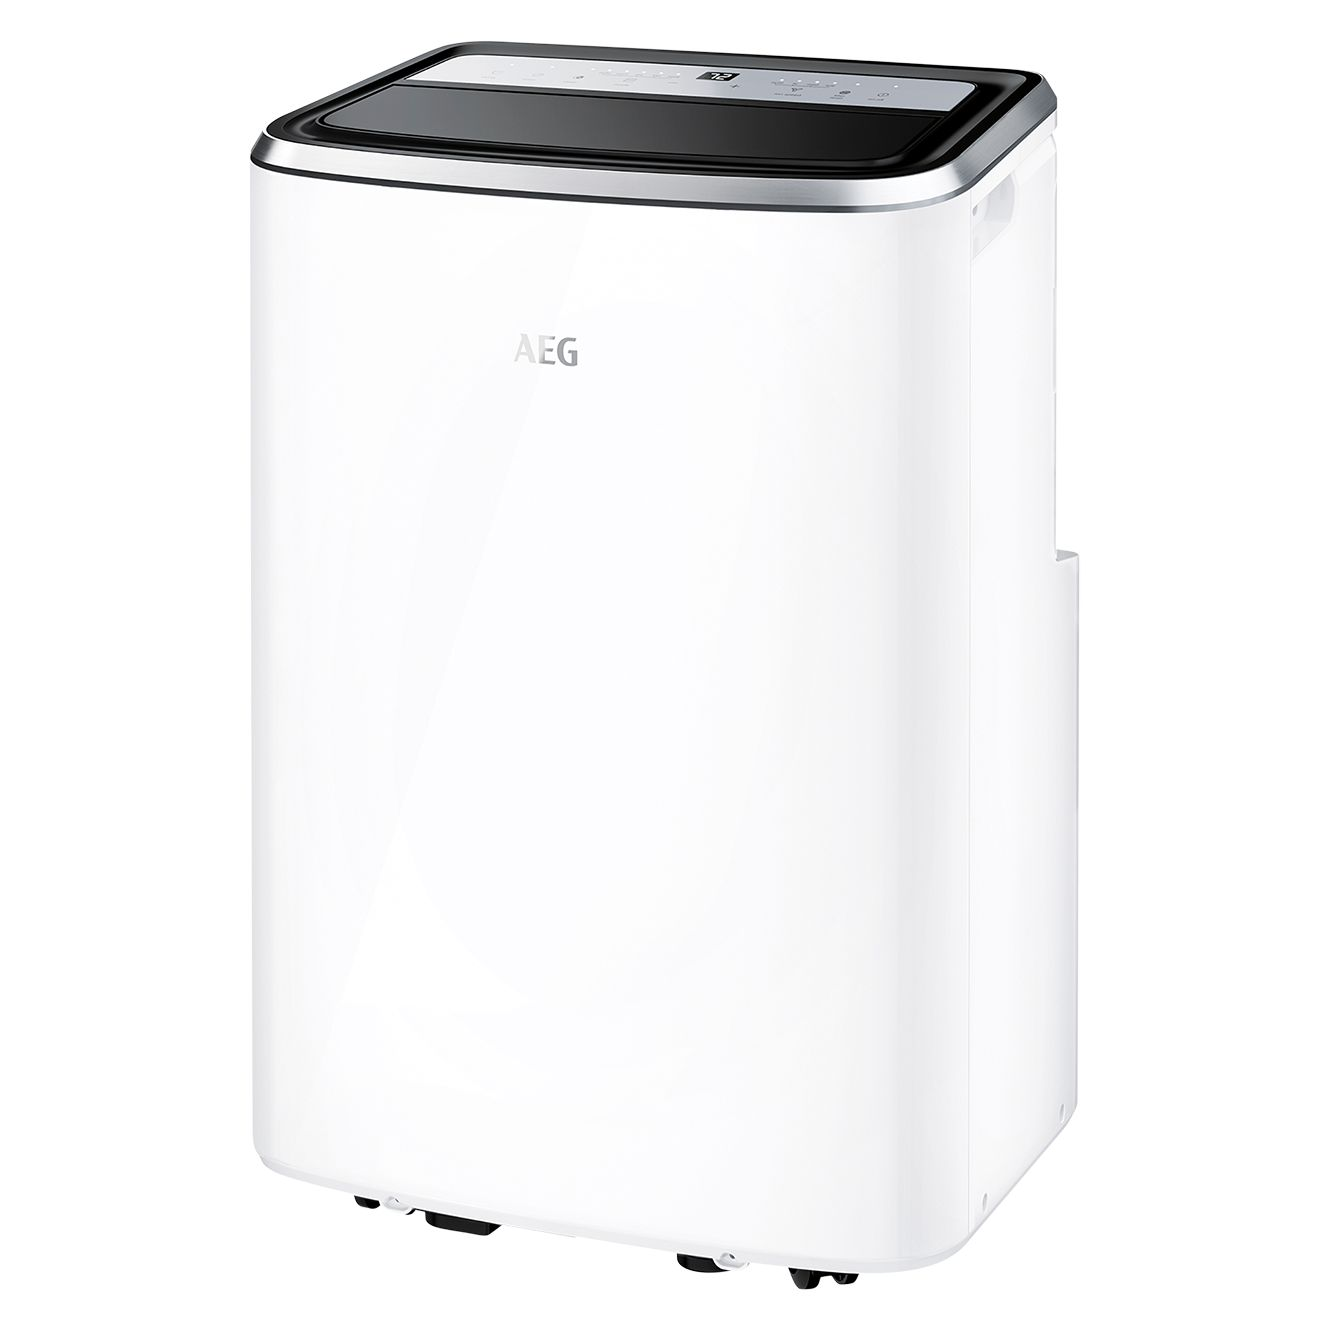 AEG AEG ChillFlex Pro AXP34U338CW Portable Air Conditioner, 12000 BTU, White